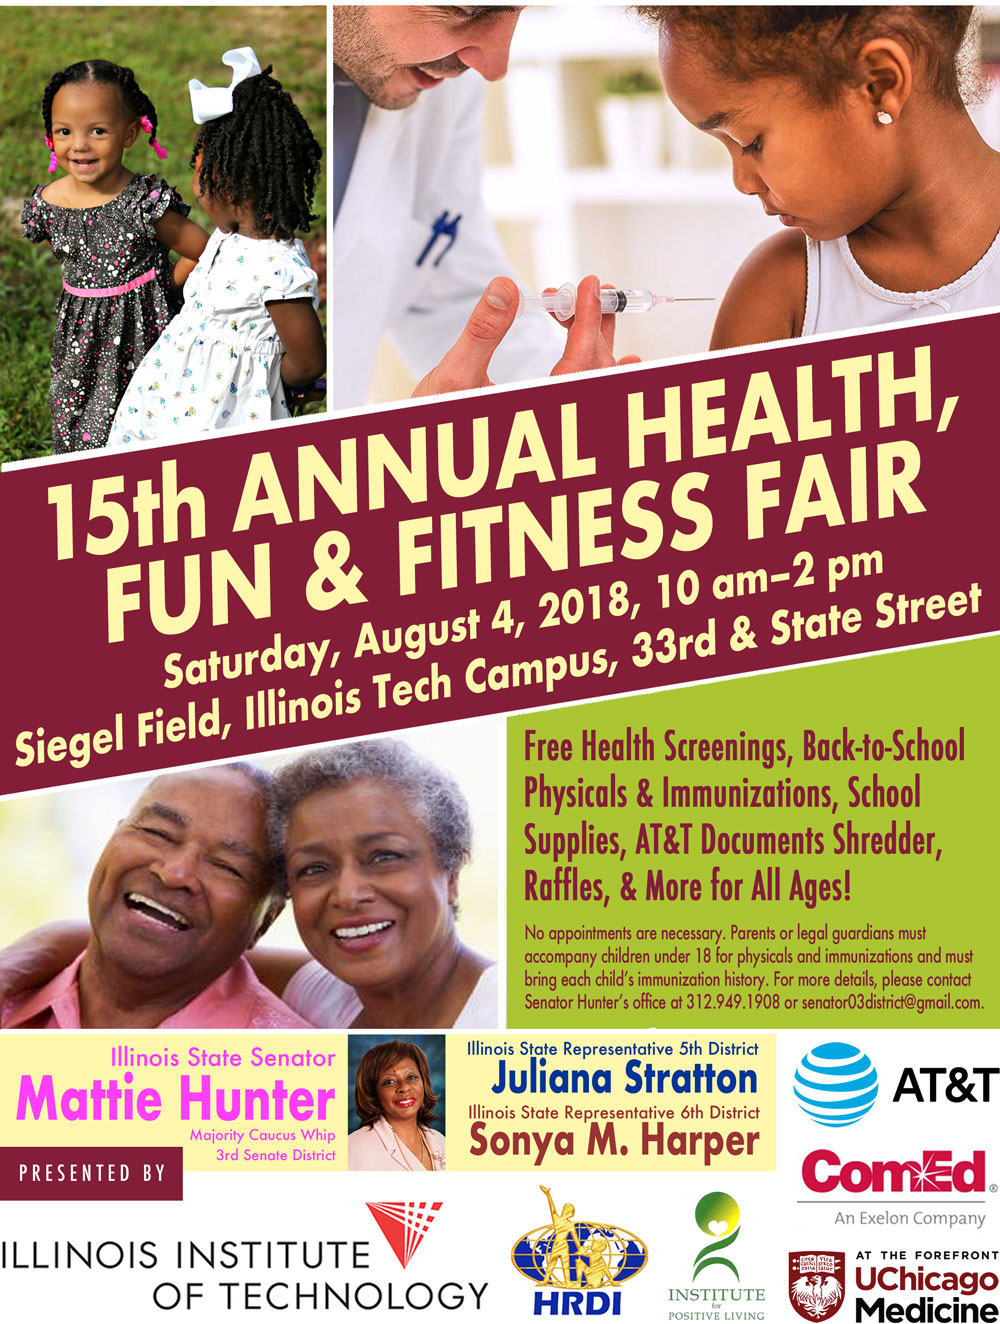 HealthFair2017-08042018-Rev06052018.jpg